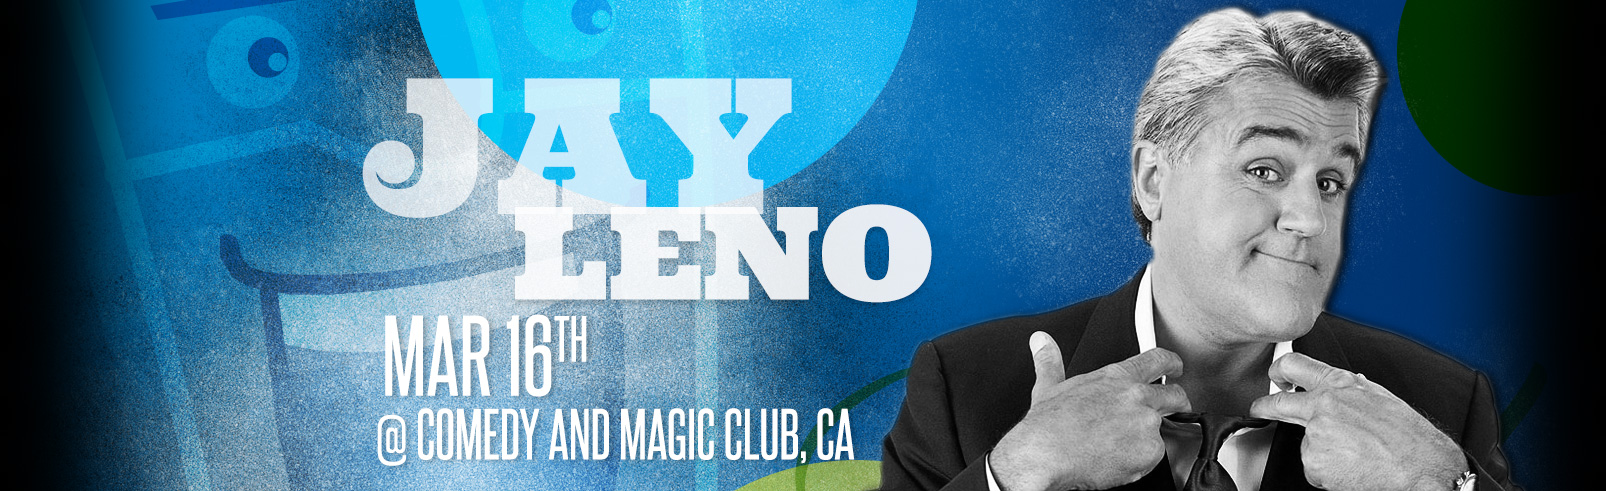 Jay Leno @ Comedy and Magic Club